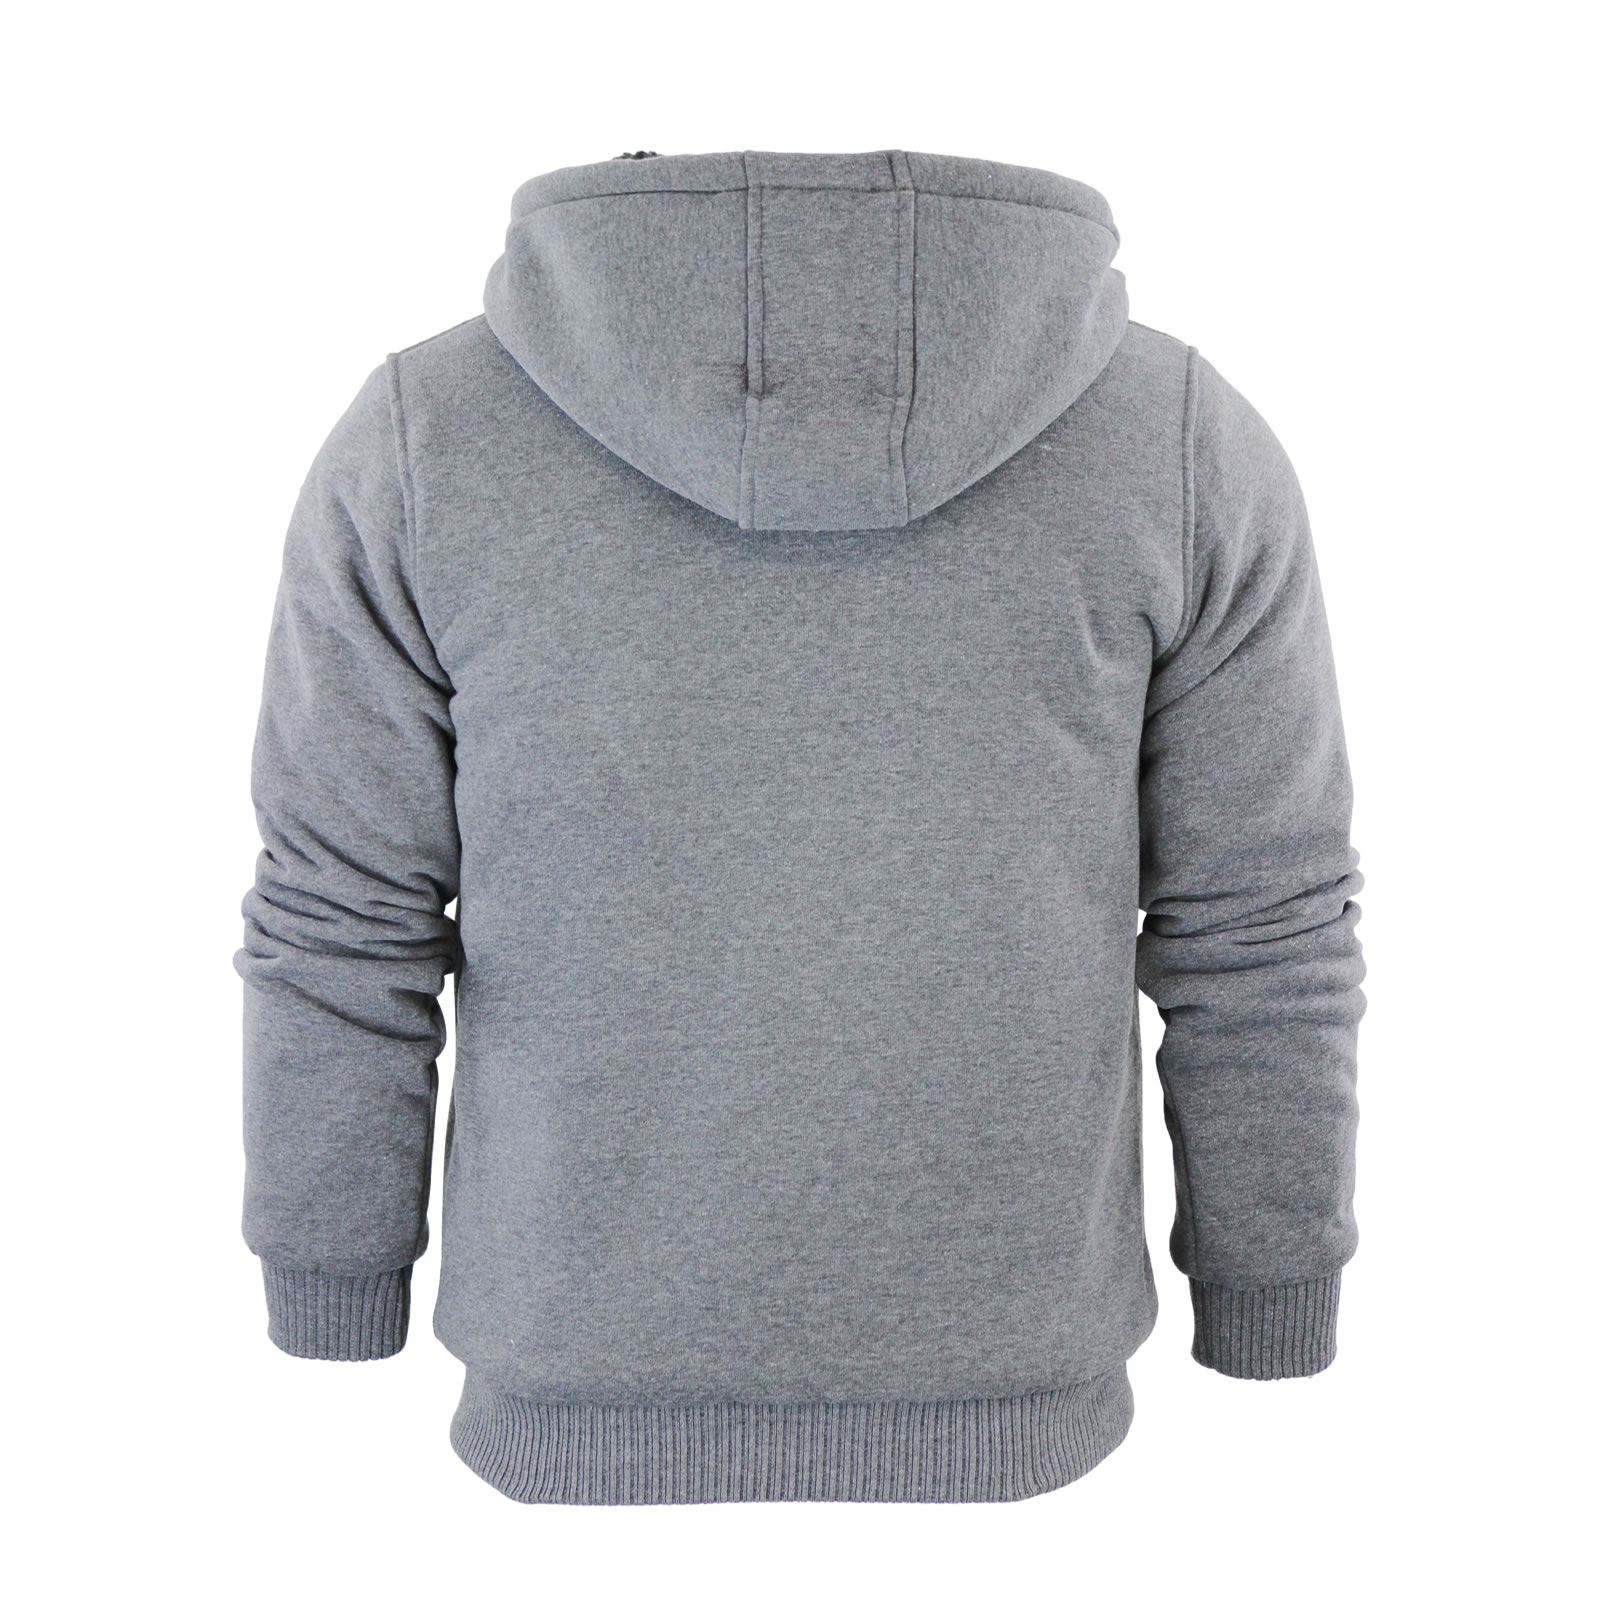 Brave-Soul-Zone-Mens-Hoodie-Sherpa-Fleece-Lined-Zip-Up-Hooded-Sweater thumbnail 6